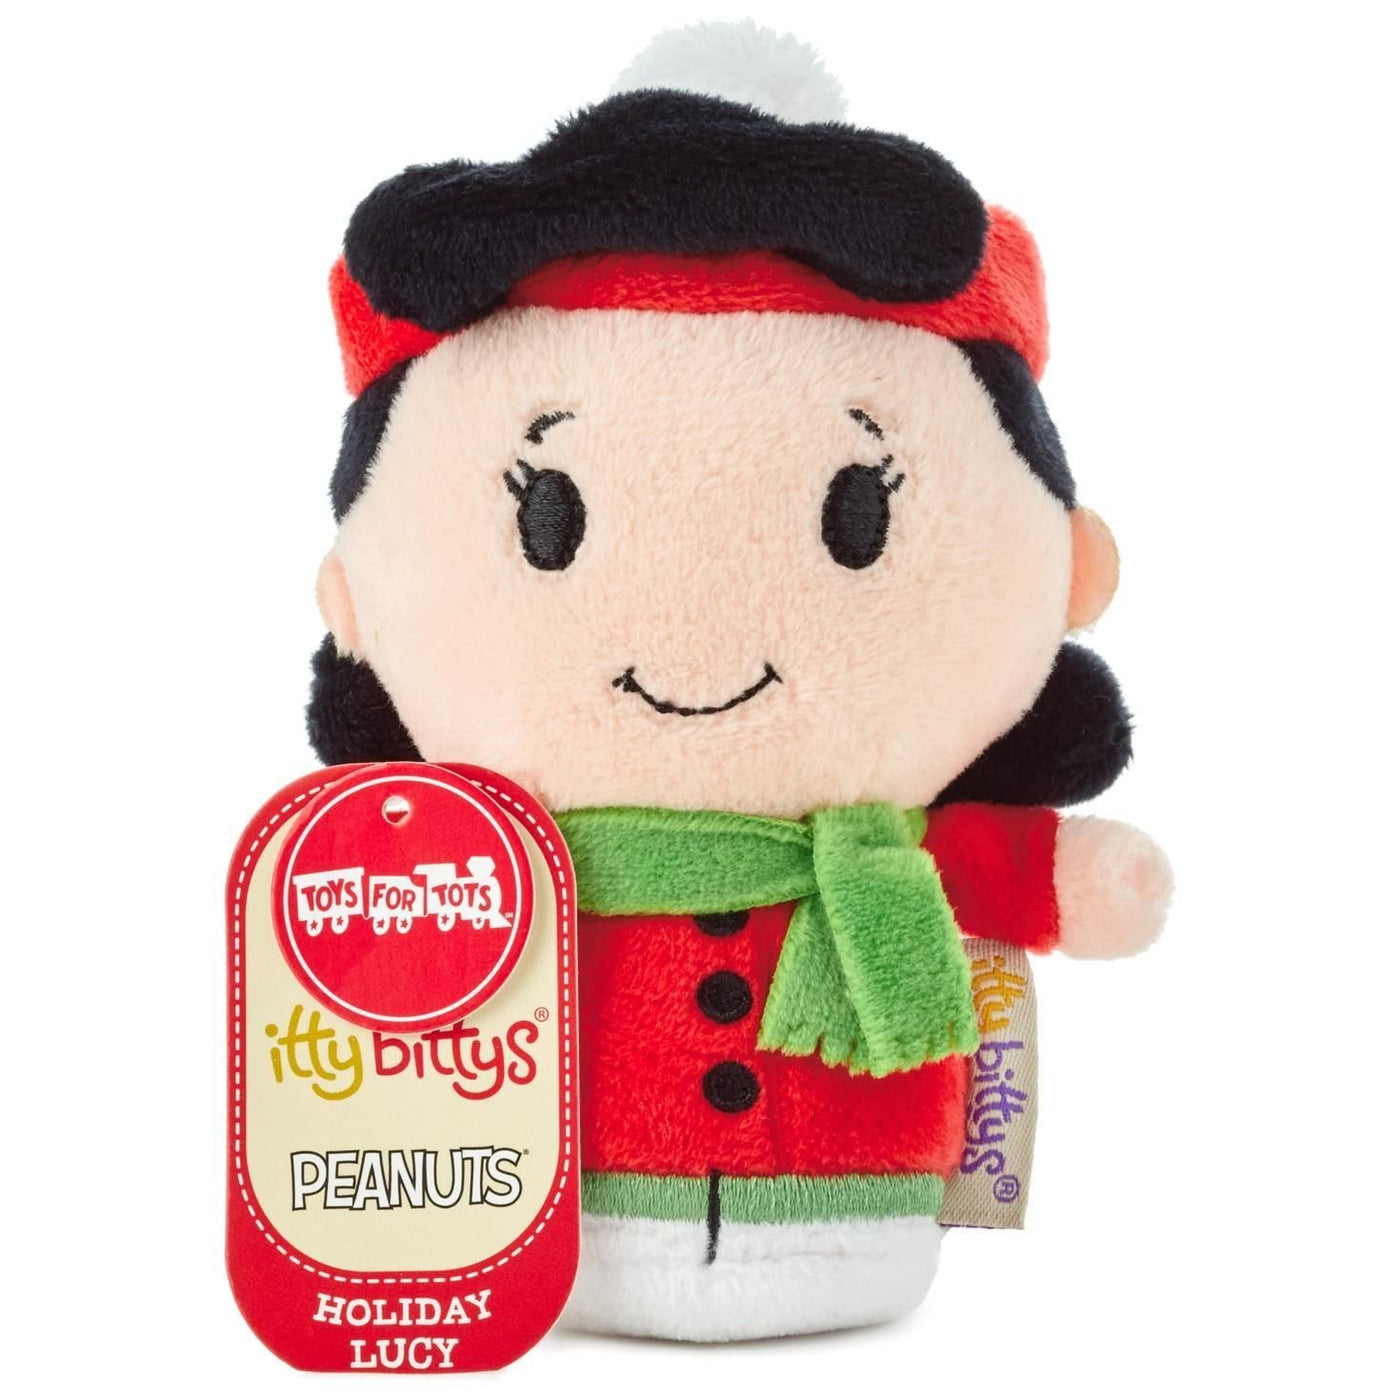 Hallmark Christmas Holiday Peanuts Lucy Itty Bittys Plush New With